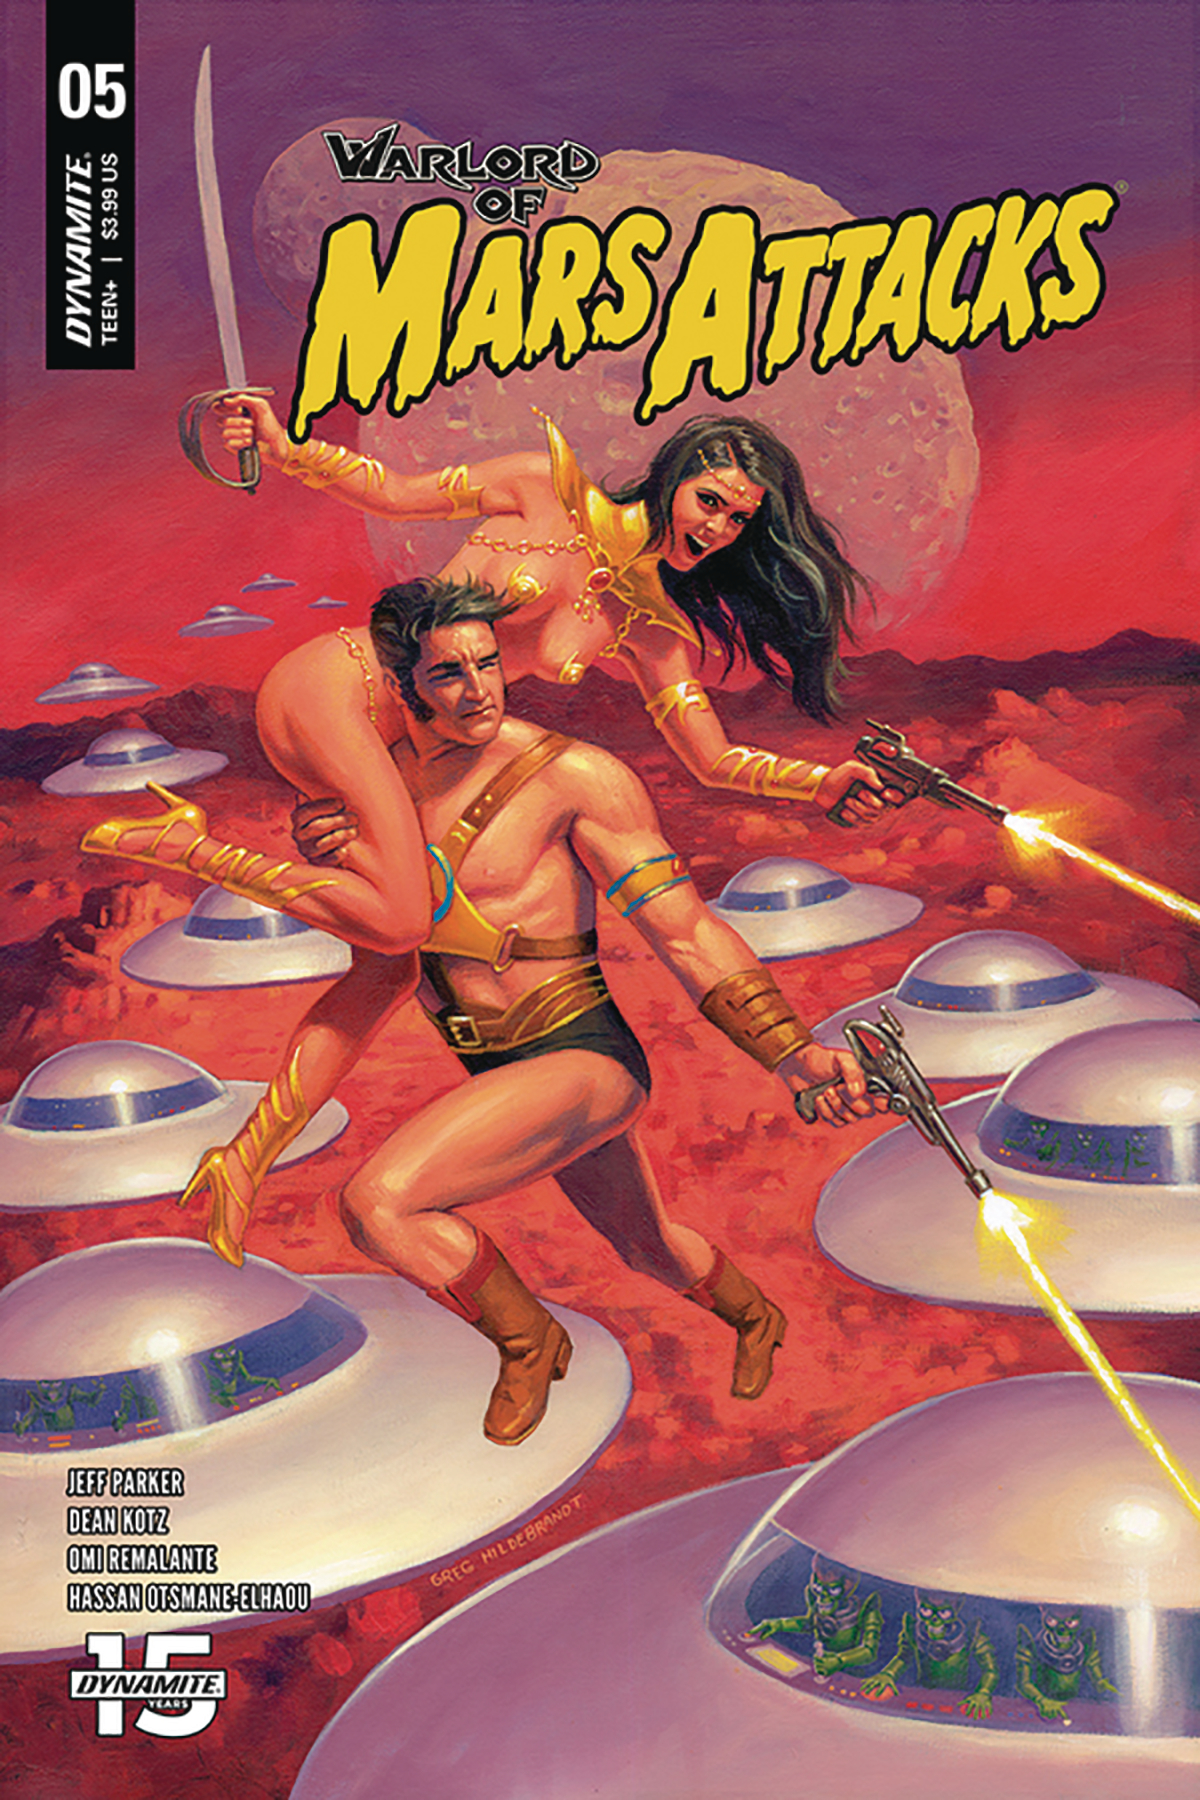 WARLORD OF MARS ATTACKS #5 CVR A HILDEBRANDT